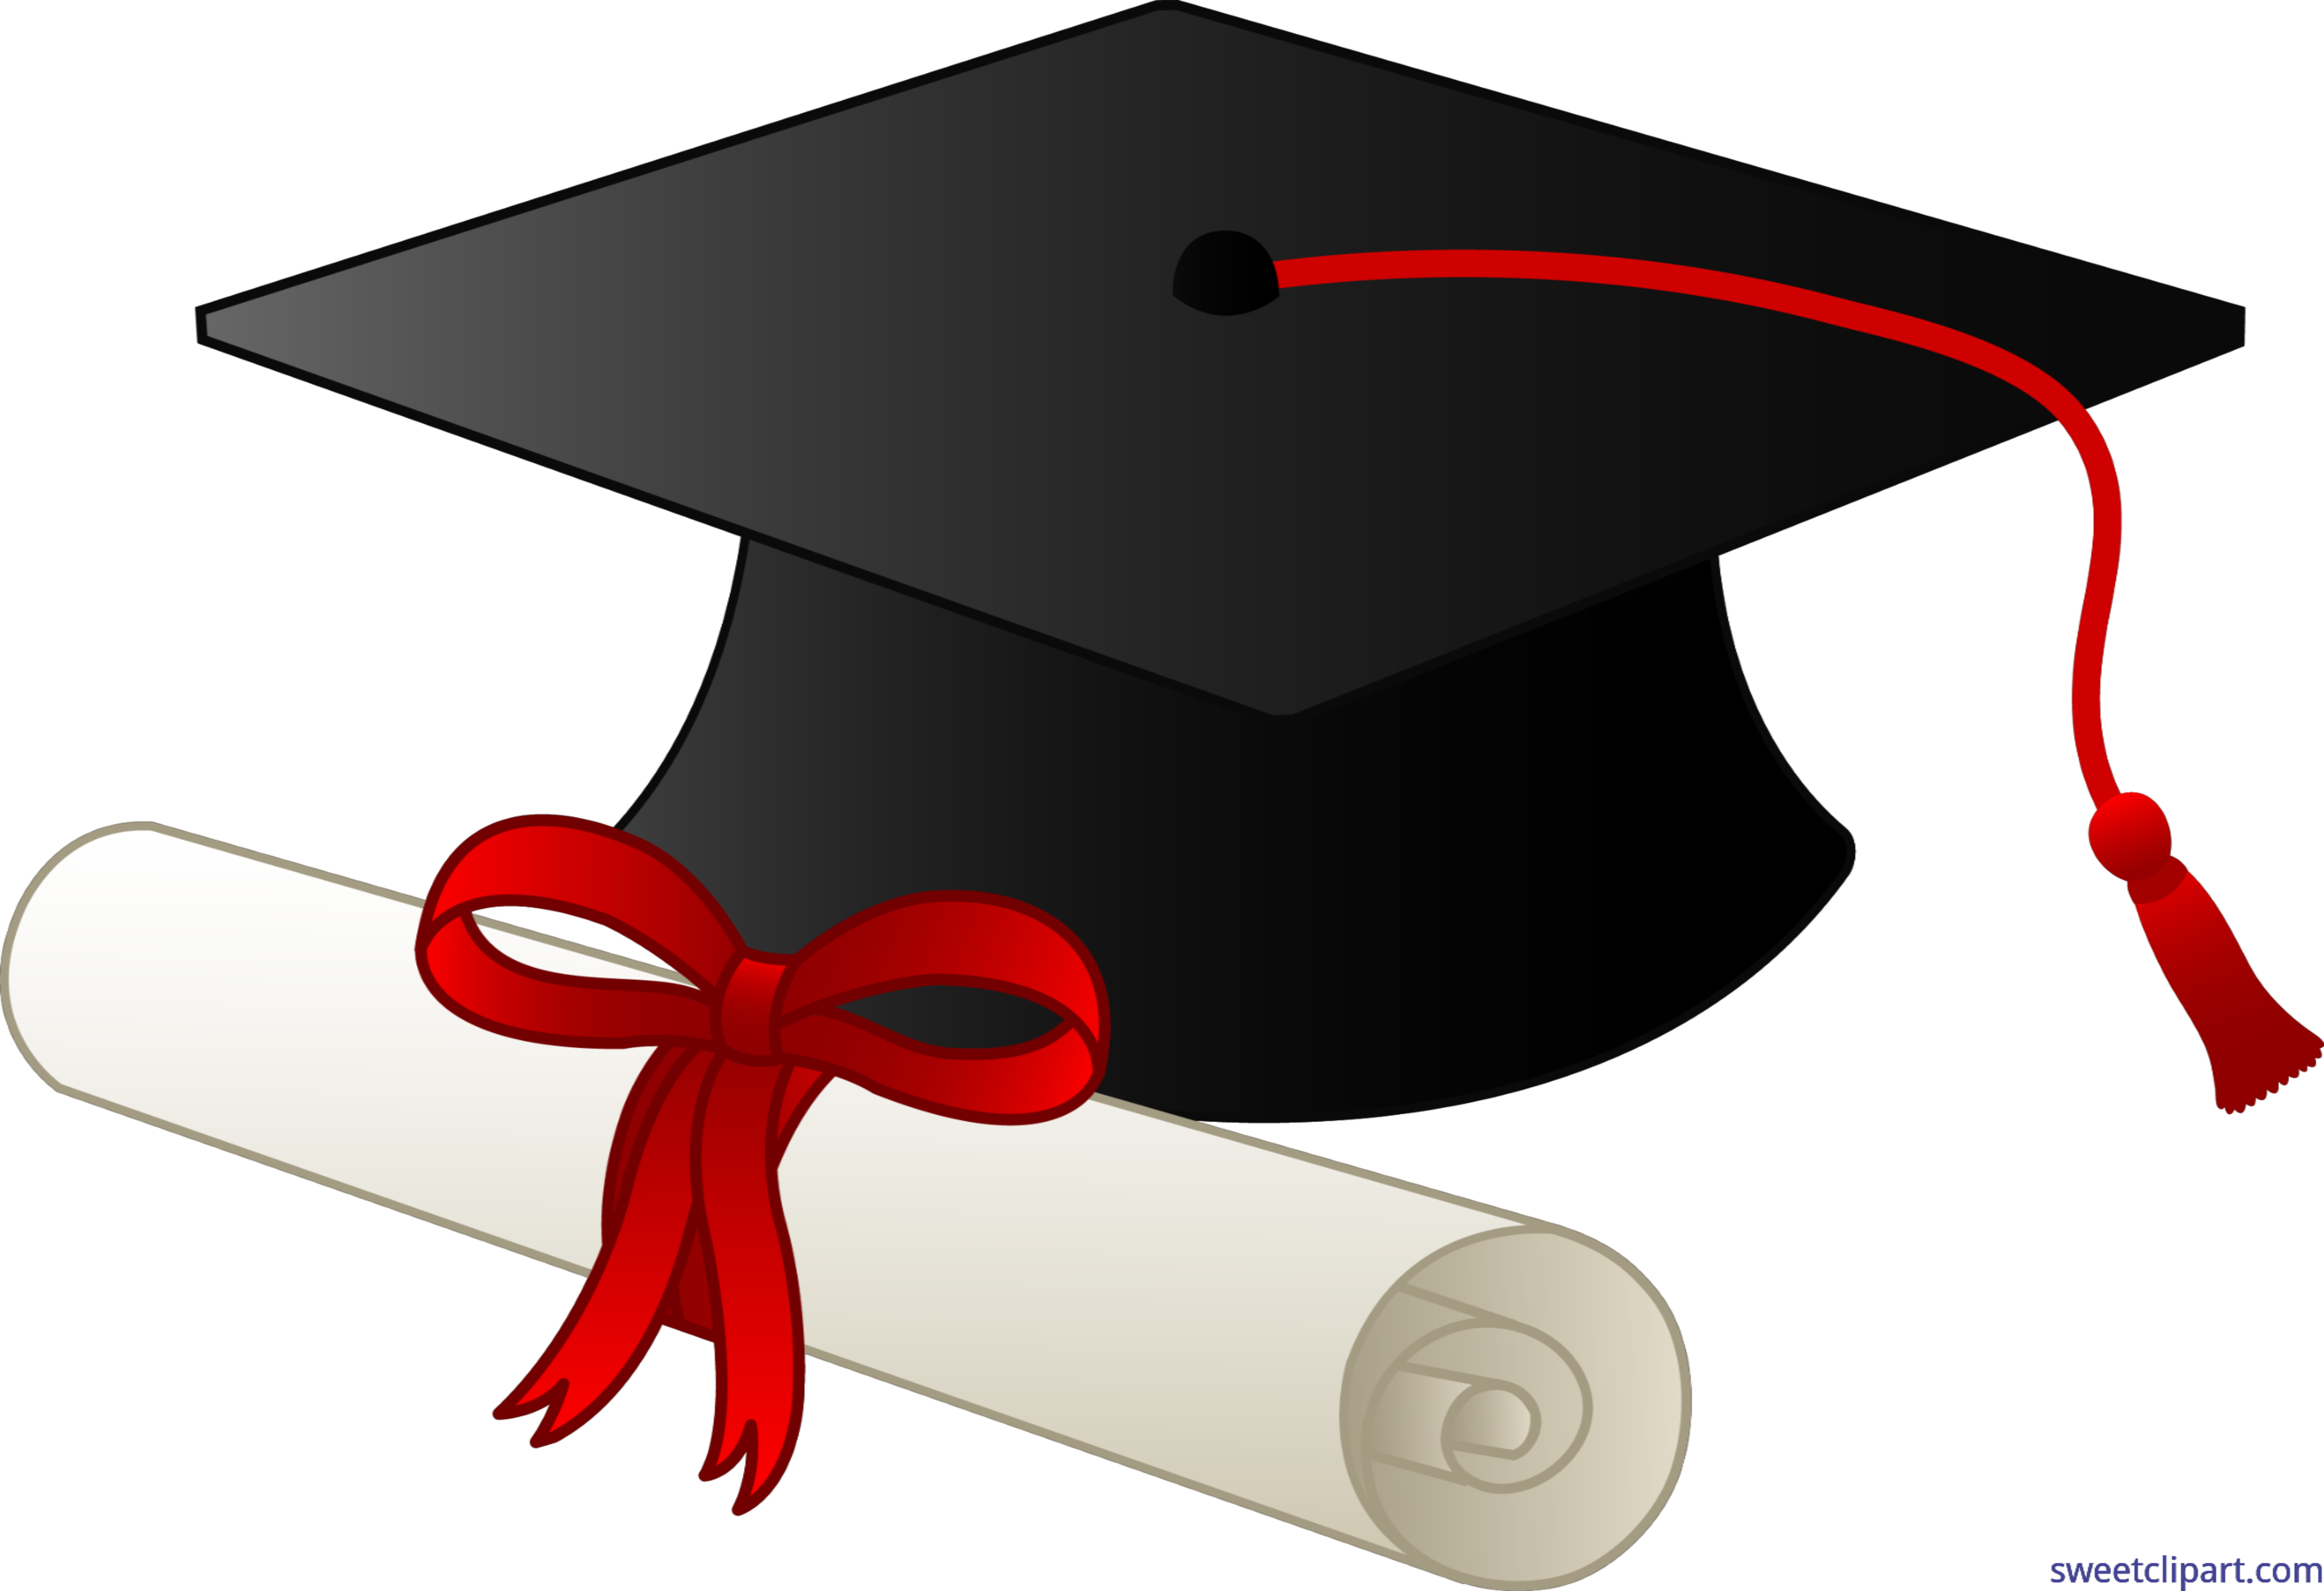 graphic royalty free download Graduation cap and clip. Diploma clipart.